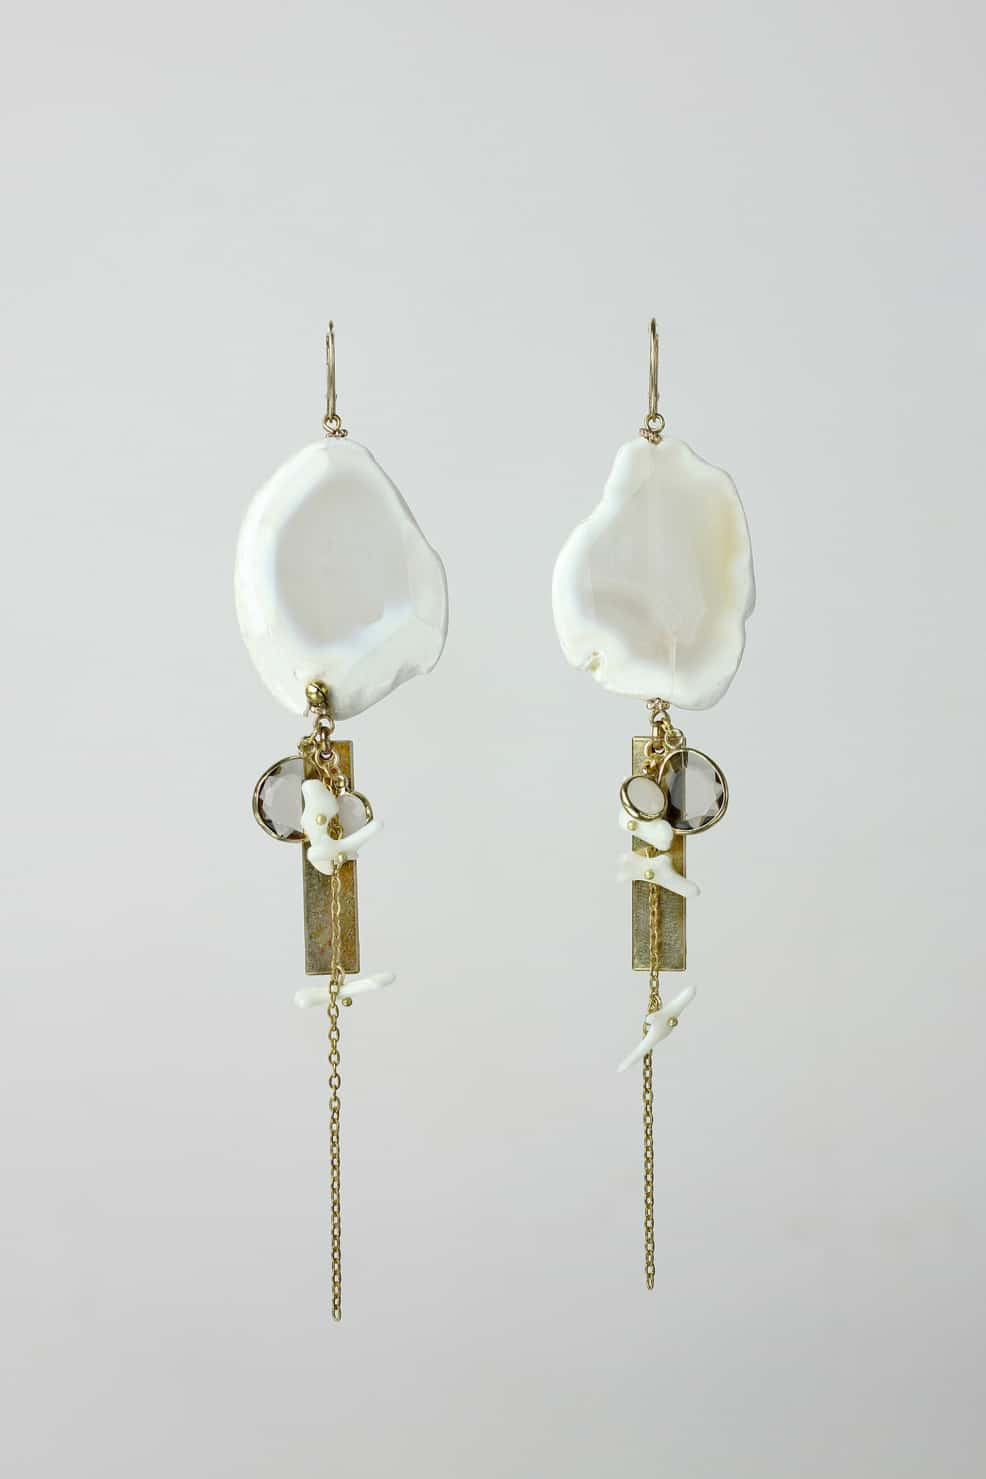 Botswana agate, white coral and glass earrings